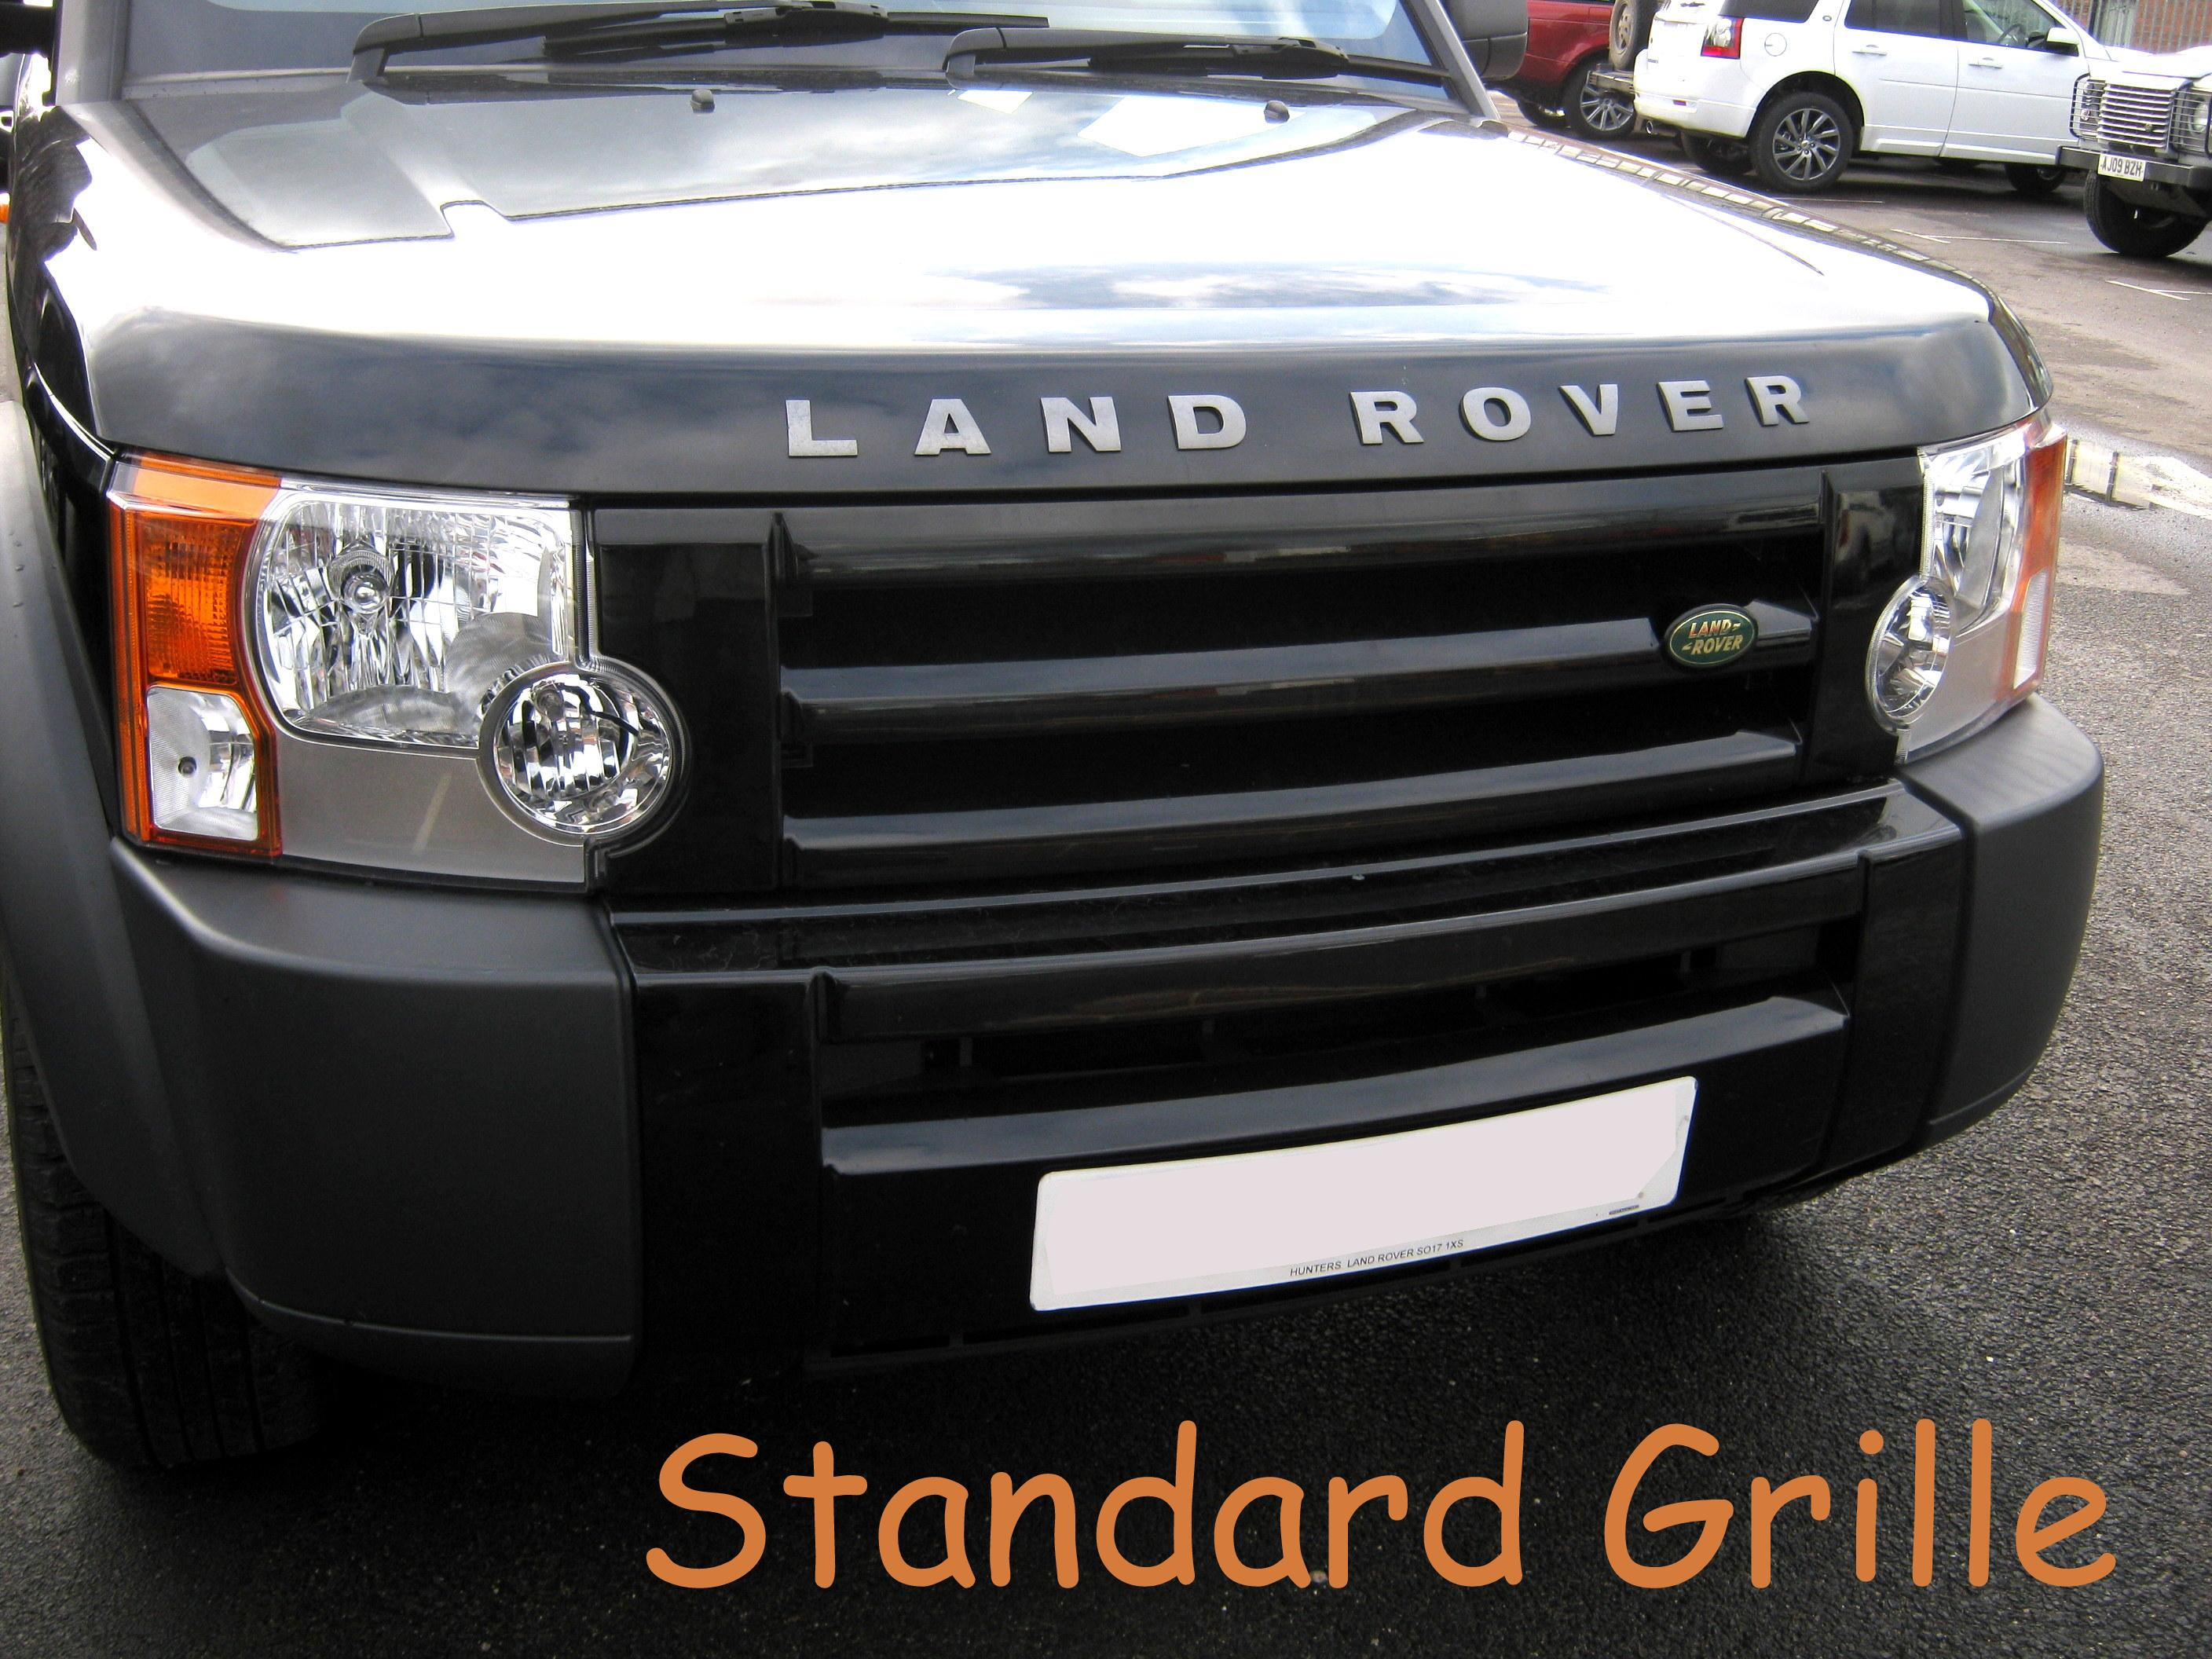 Disco 4 Style Front Grille Conversion For Land Rover